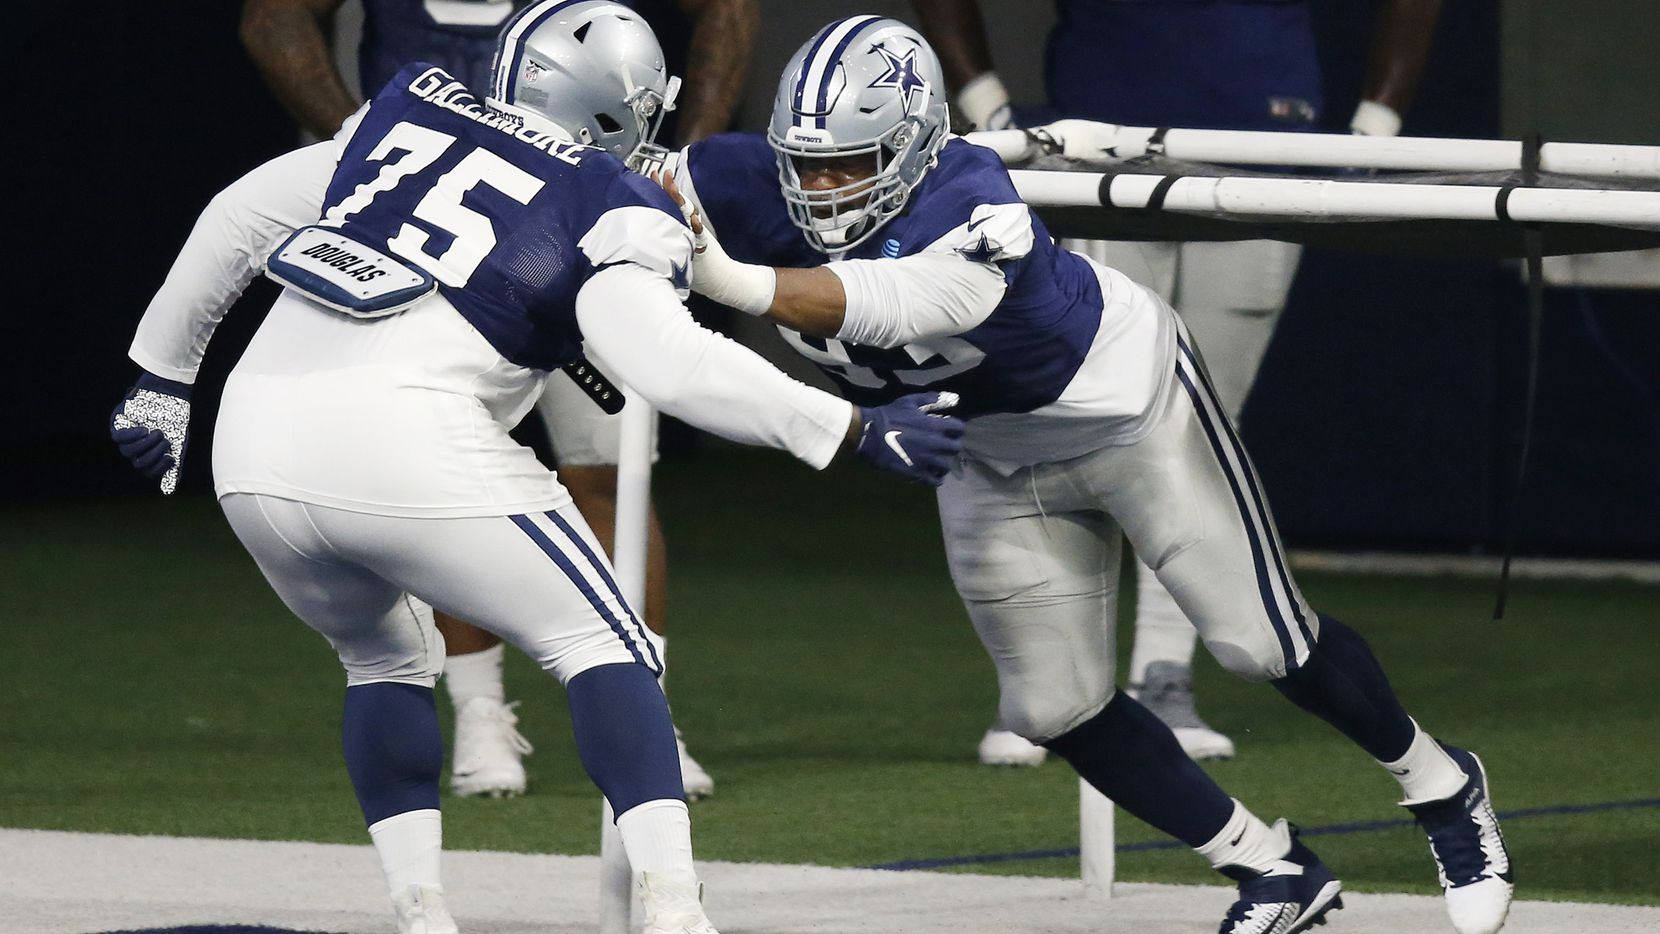 Dallas Cowboys defensive tackle Gerald McCoy (93) runs through a drill with Dallas Cowboys defensive tackle Neville Gallimore (75) during training camp at the Dallas Cowboys headquarters at The Star in Frisco, Texas on Monday, August 17, 2020.